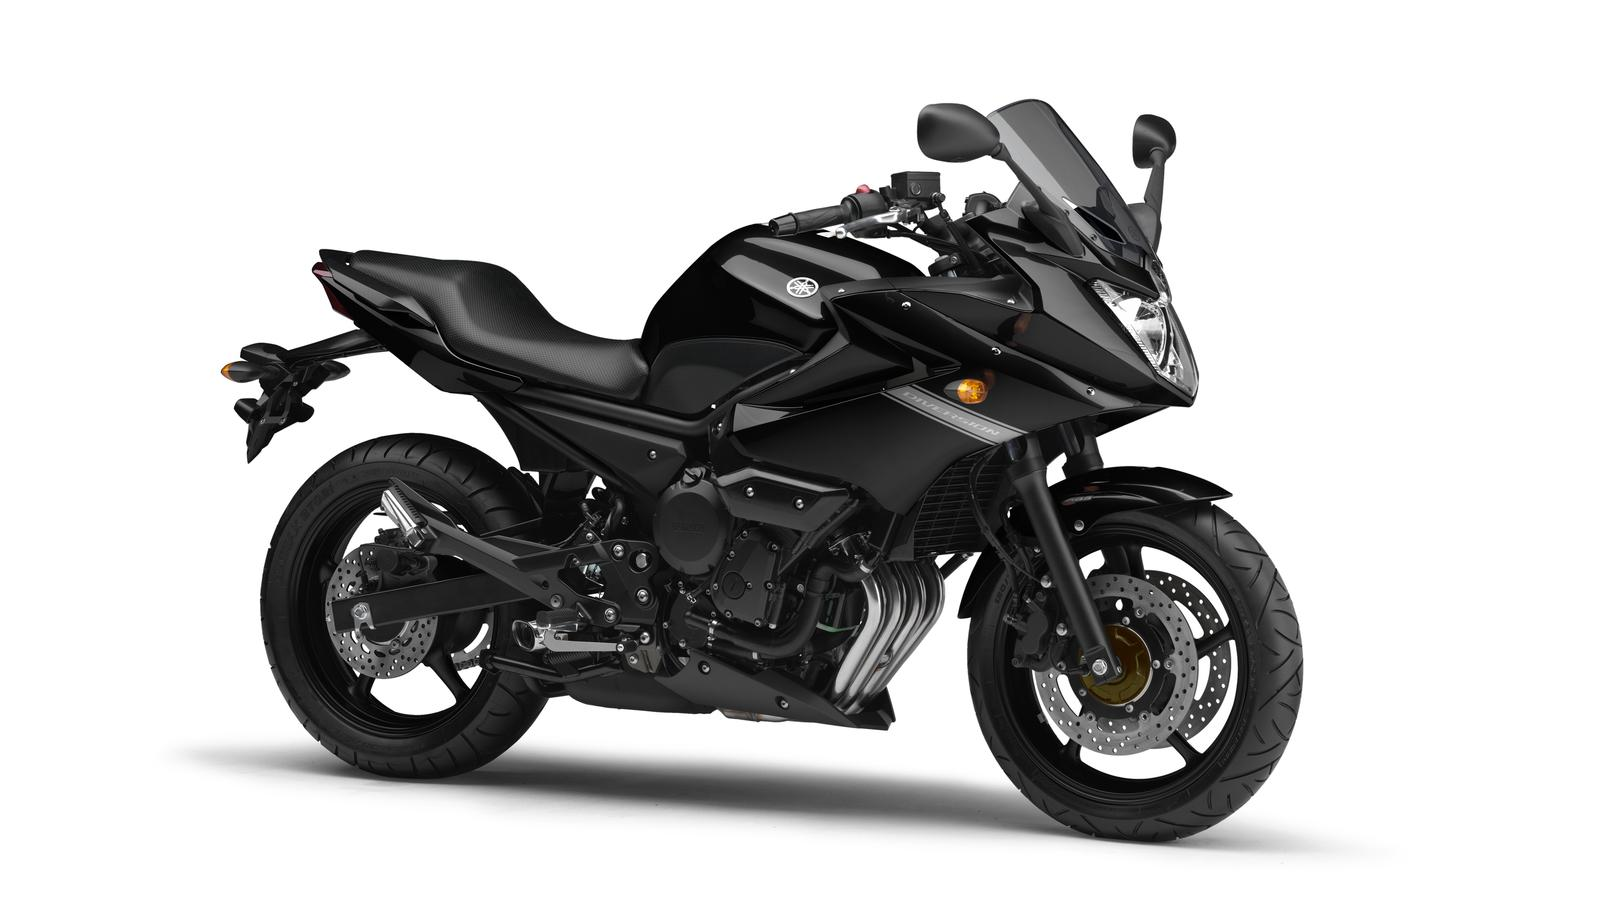 2011 Yamaha XJ6 Diversion EU Midnight Black Studio 001